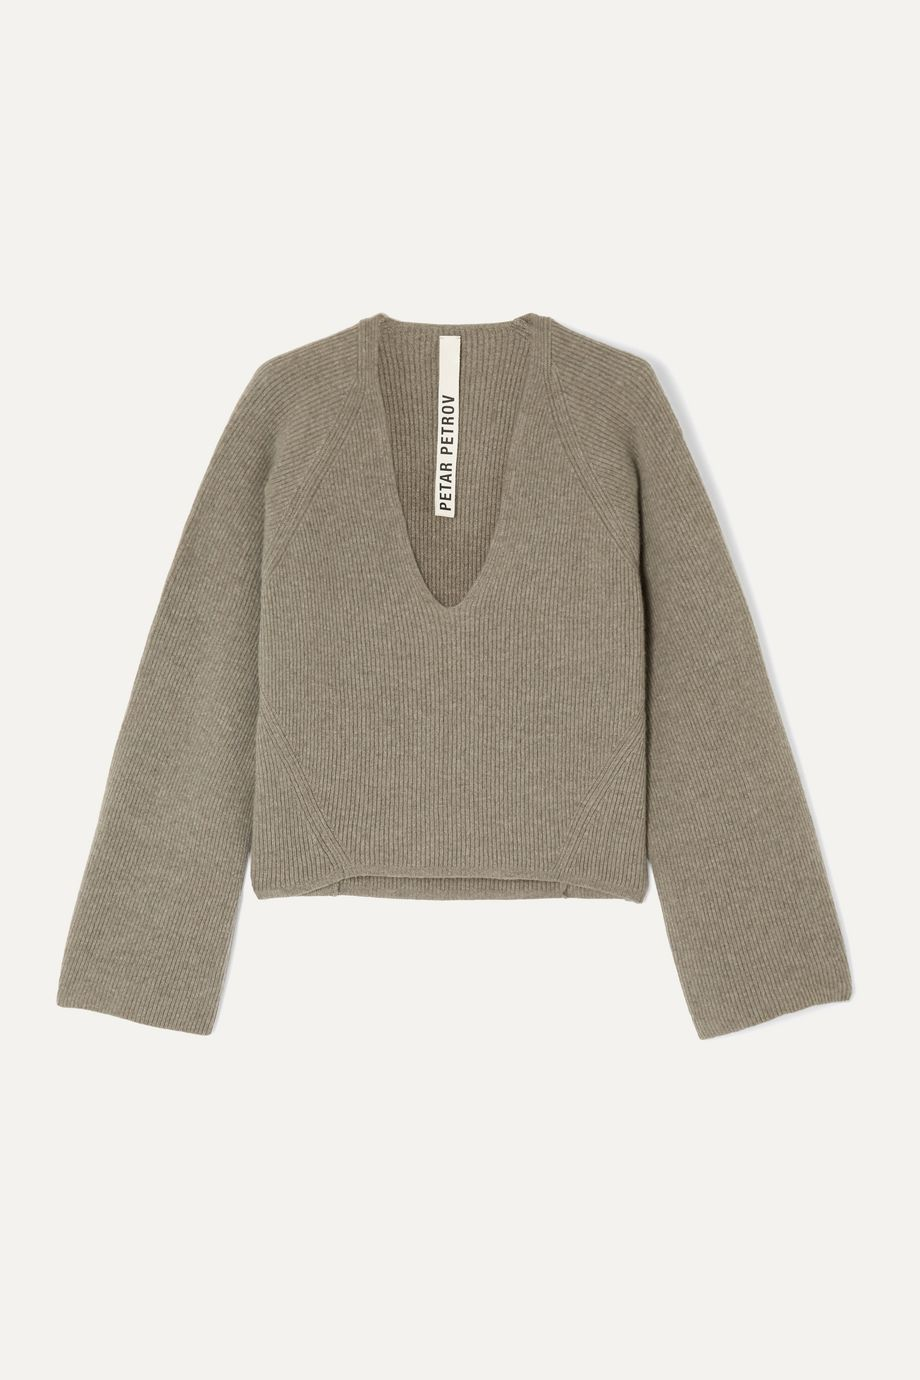 Petar Petrov Kenne ribbed cashmere sweater